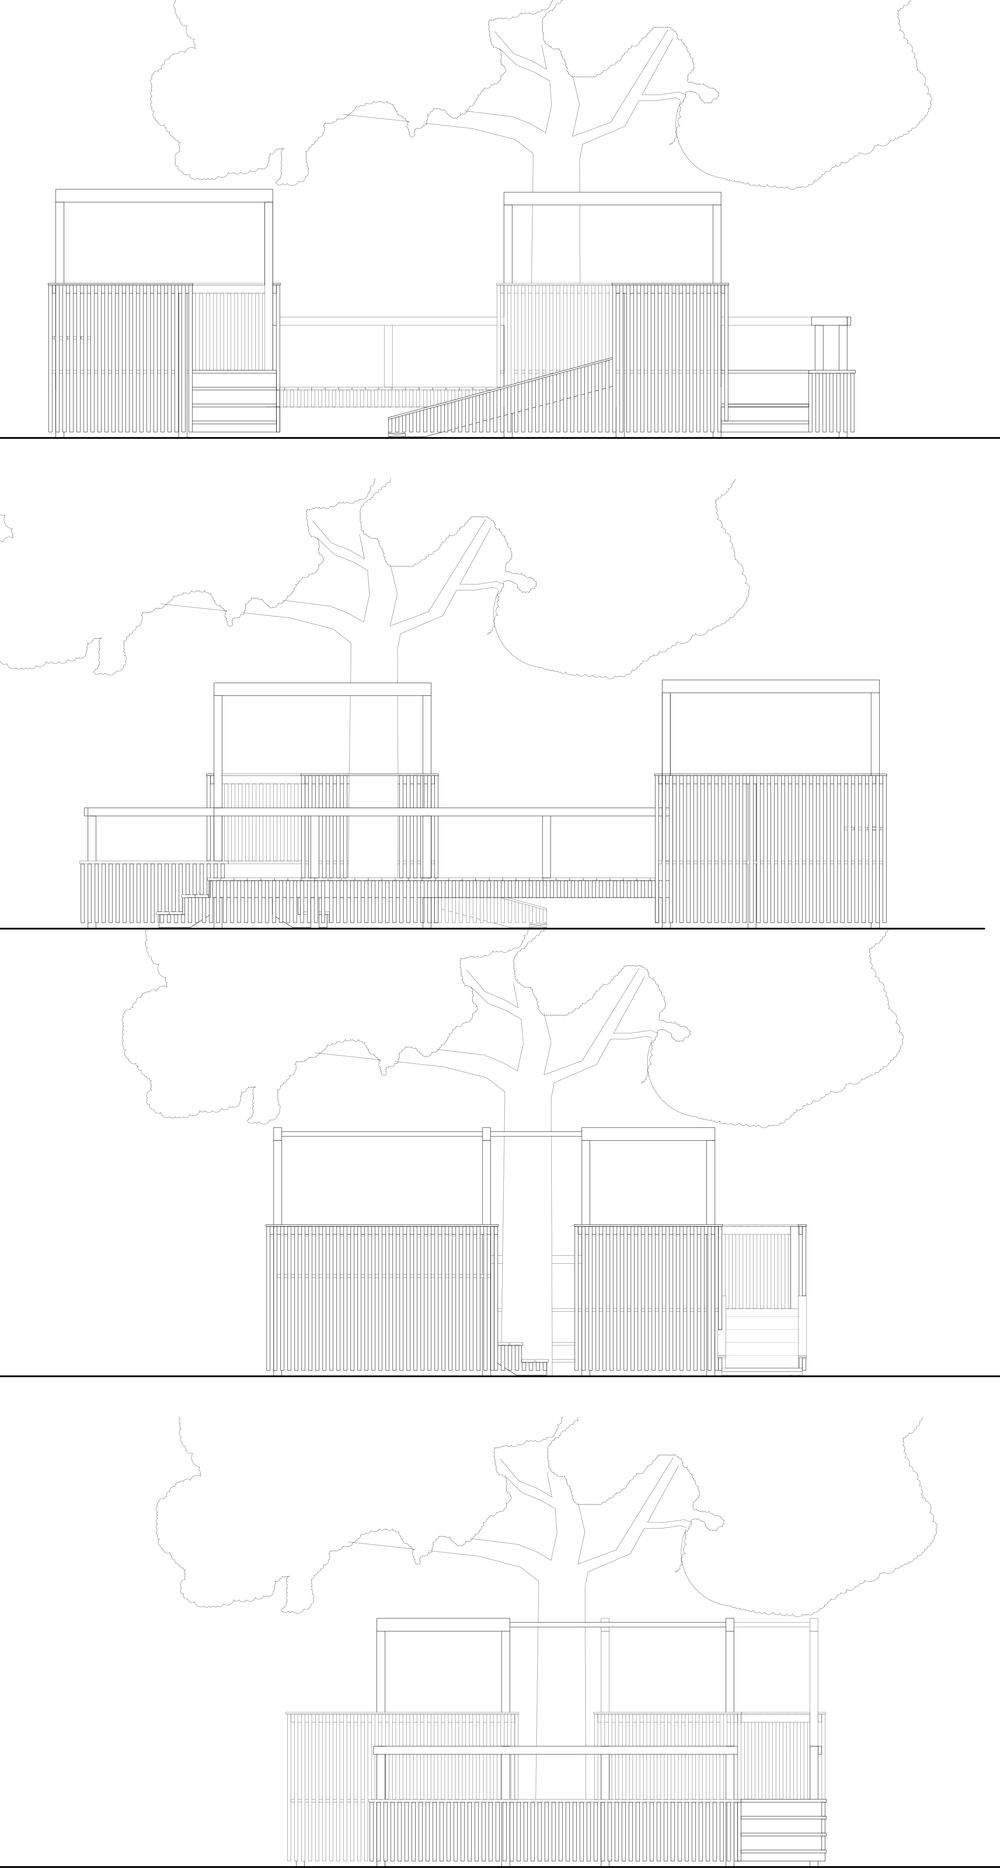 treehouse_elevations.jpg